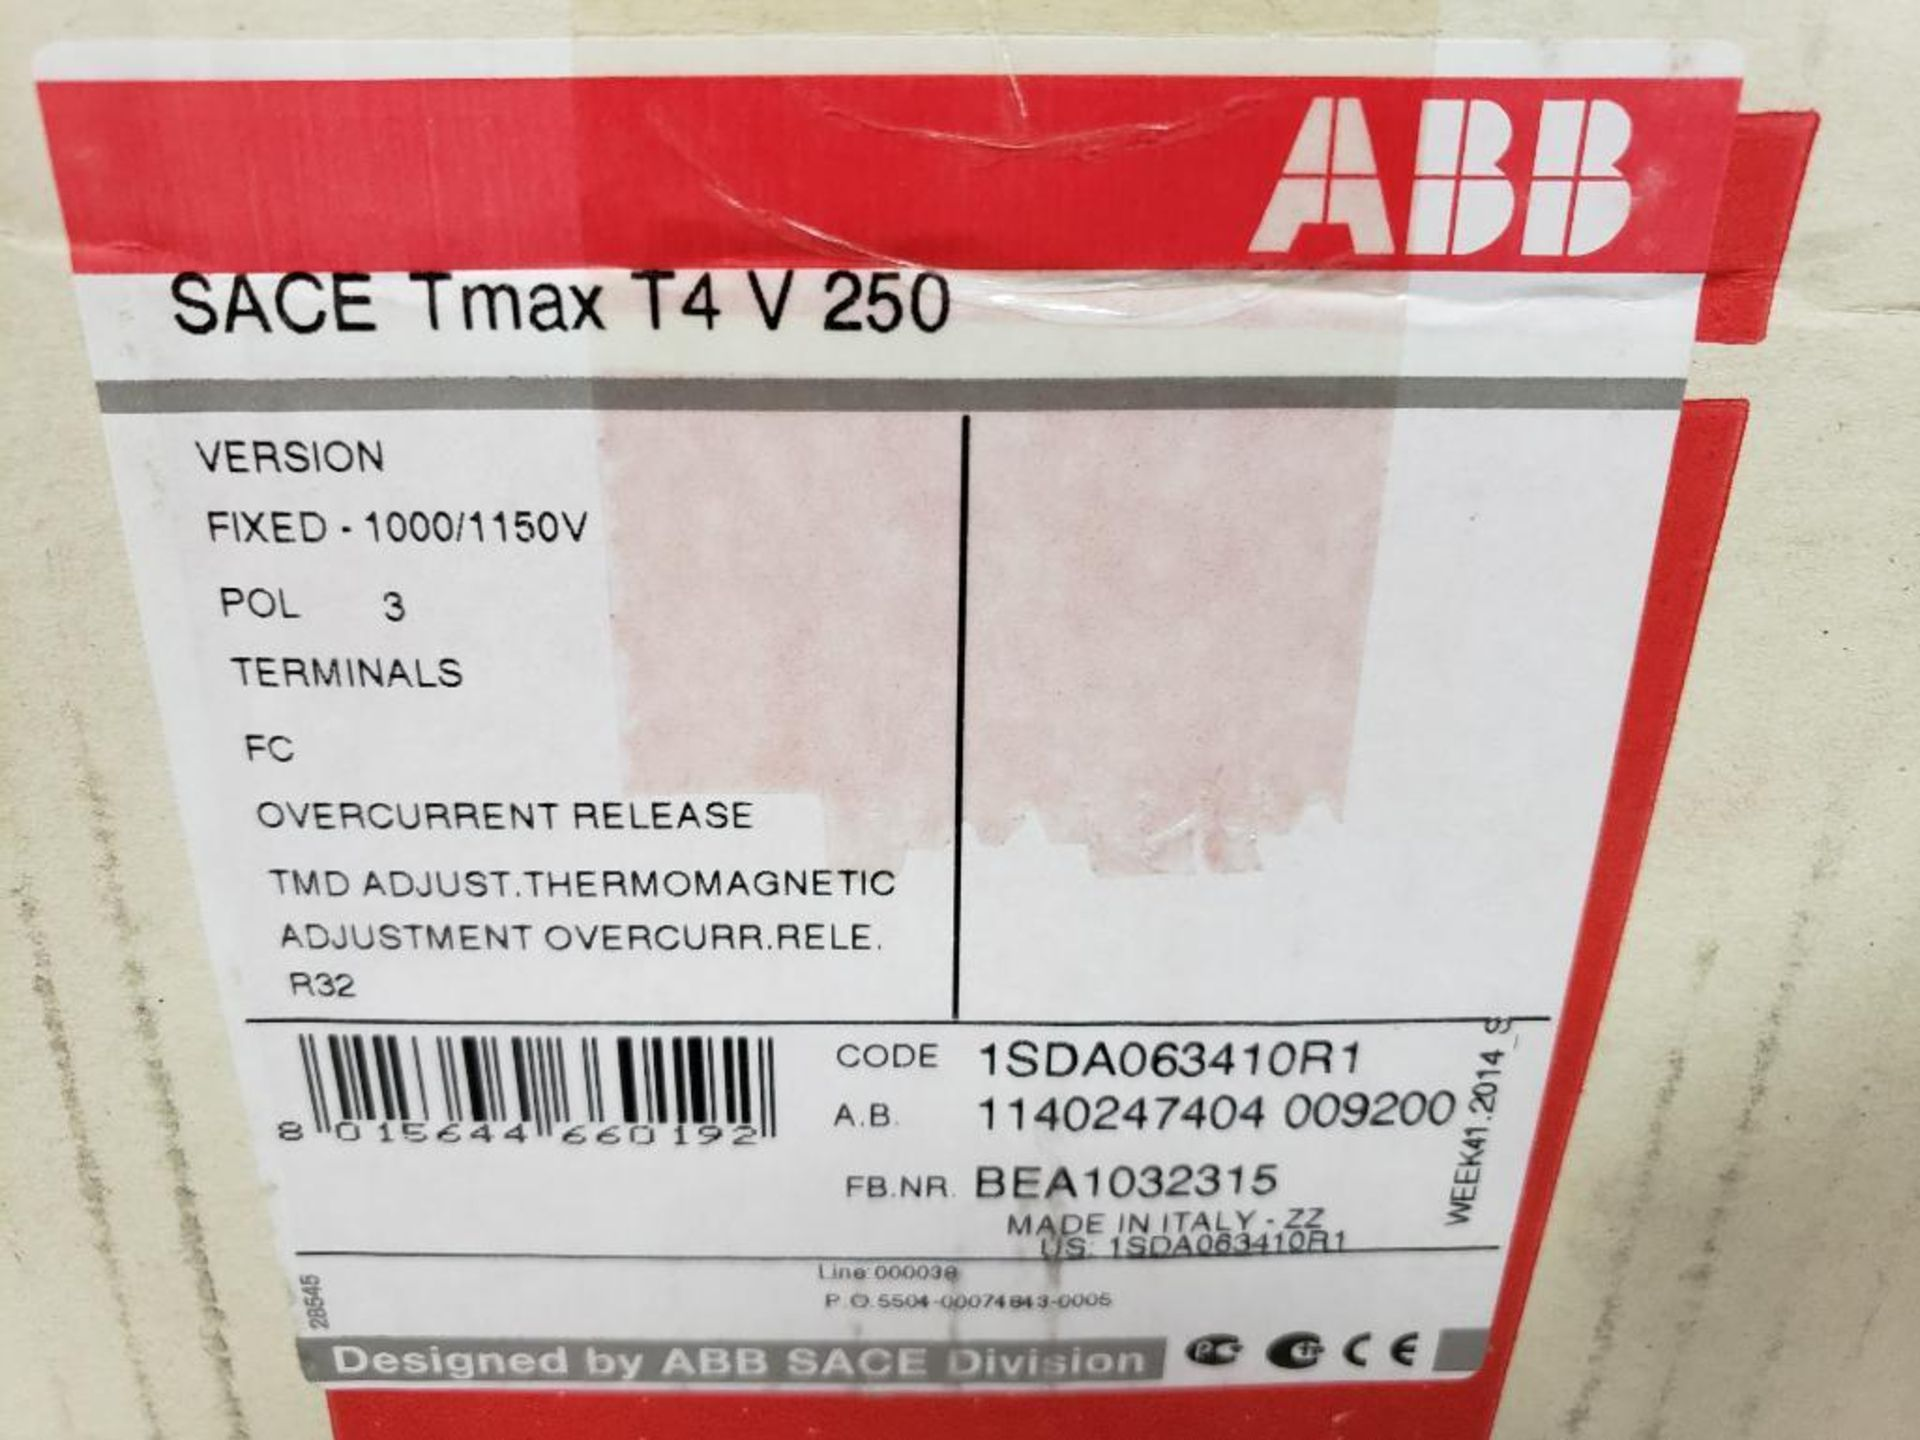 ABB circuit breaker model sace tmax t4v250. New in box. - Image 2 of 3